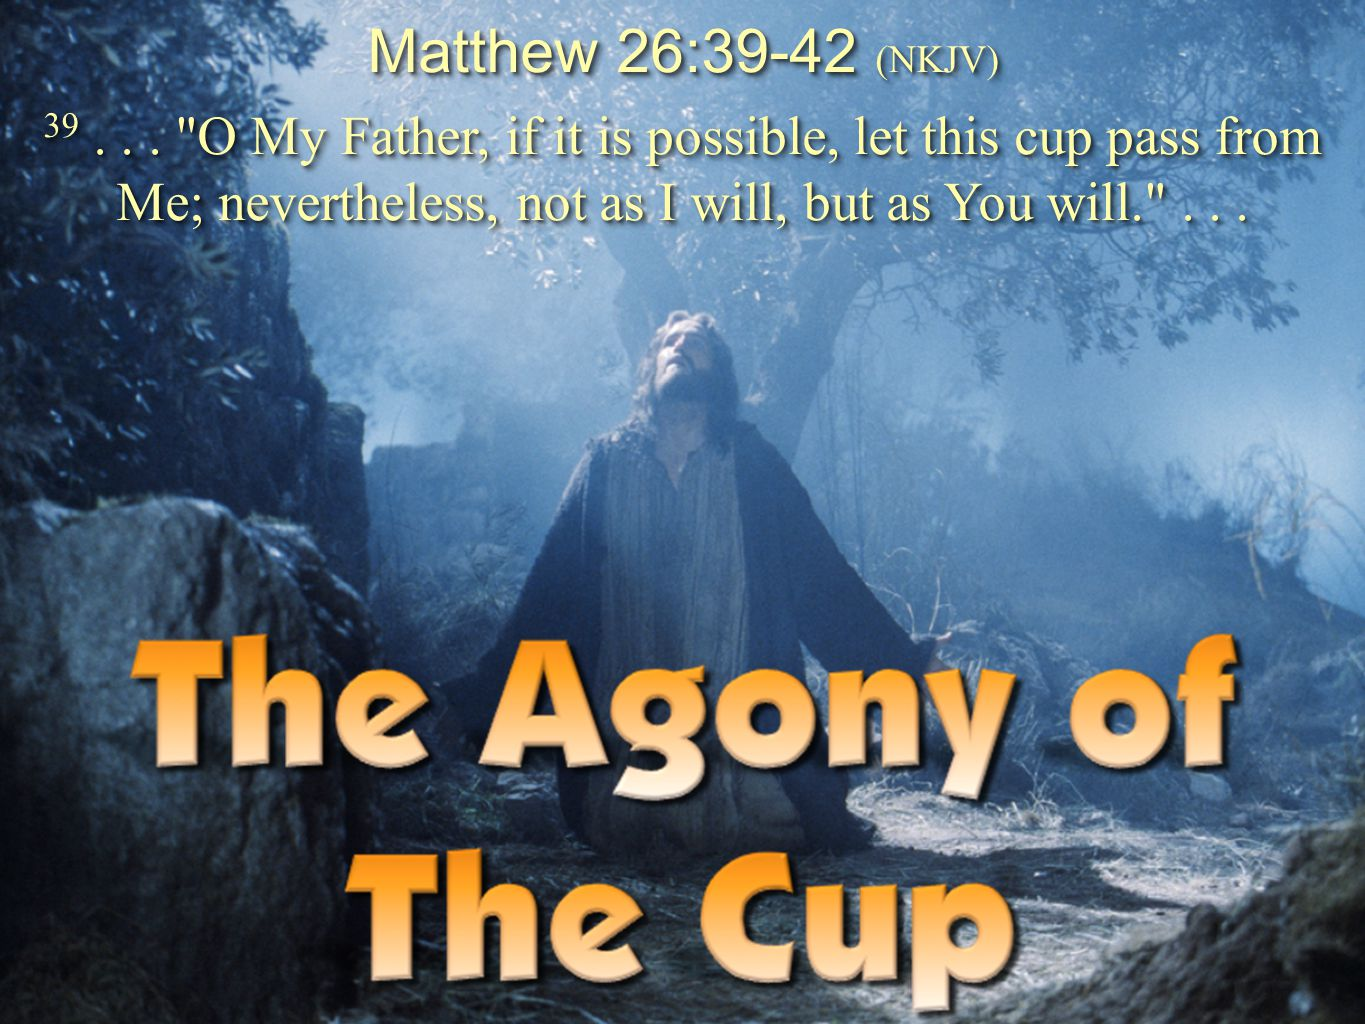 Matthew 26:39-42 (NKJV) 39 . . . O My Father, if it is possible, let this cup pass from Me; nevertheless, not as I will, but as You will. . . .